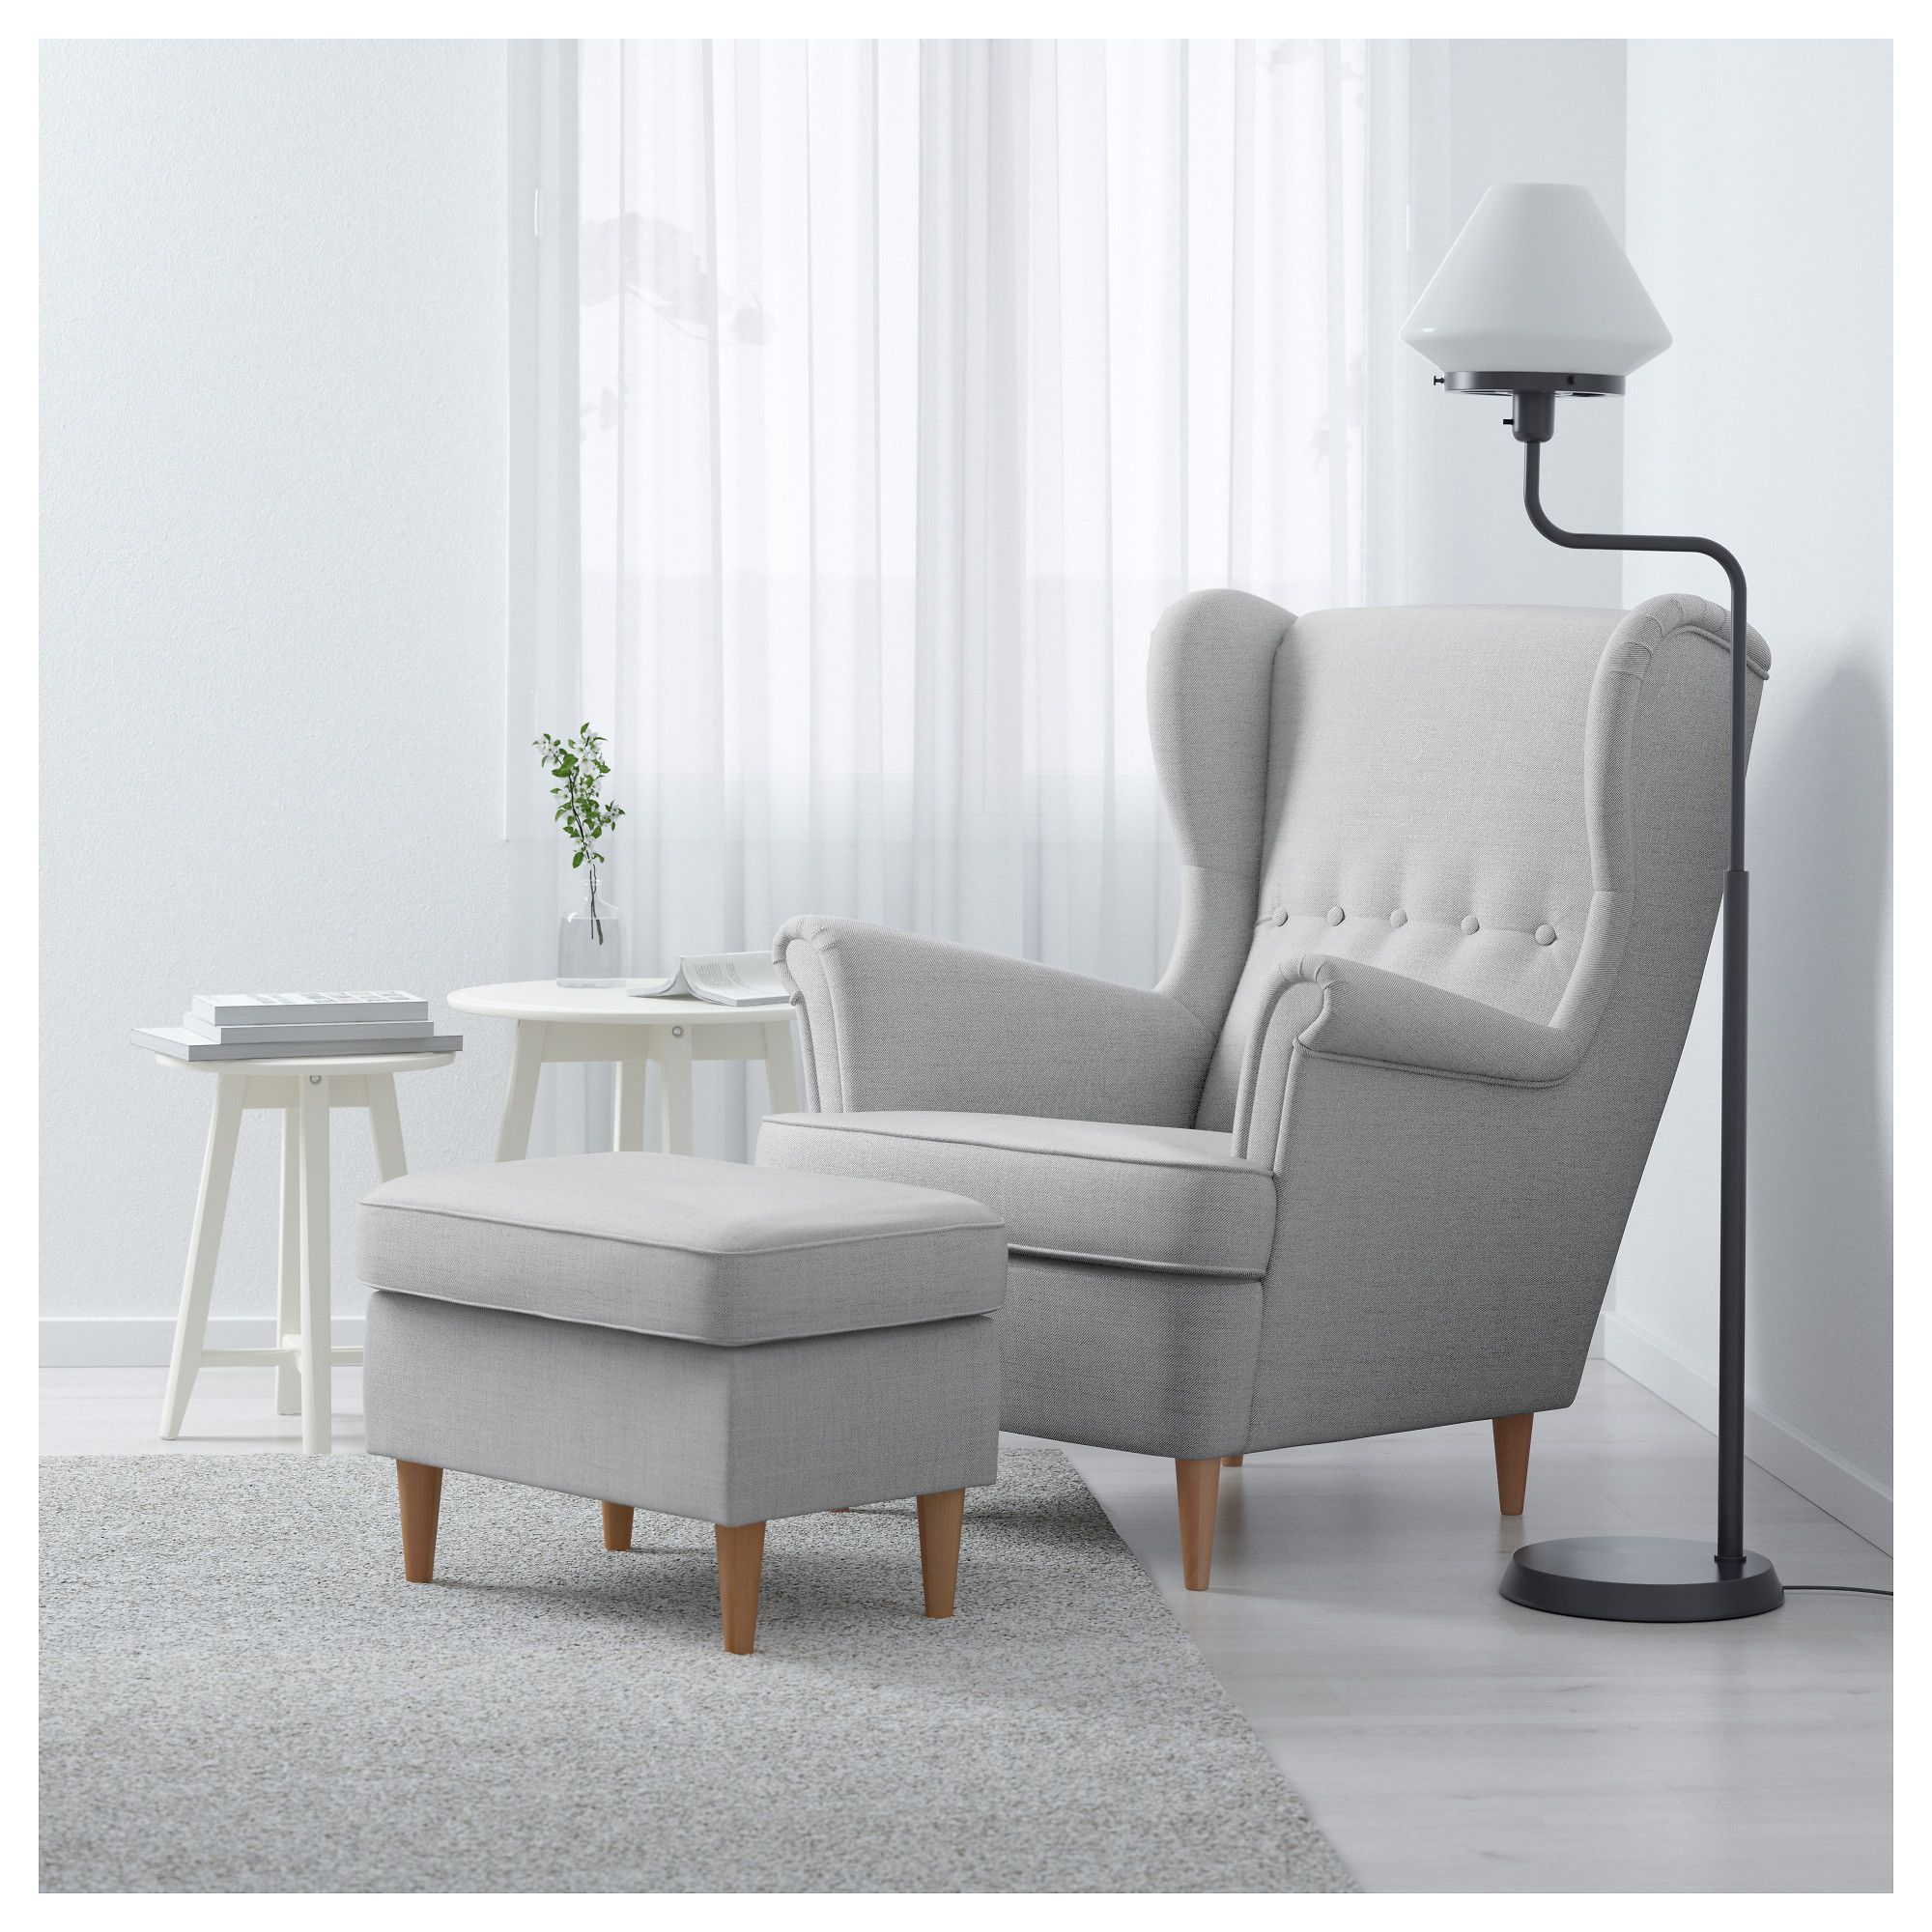 Xxl sessel ikea  IKEA STRANDMON wing chair 10 year guarantee. Read about the terms ...